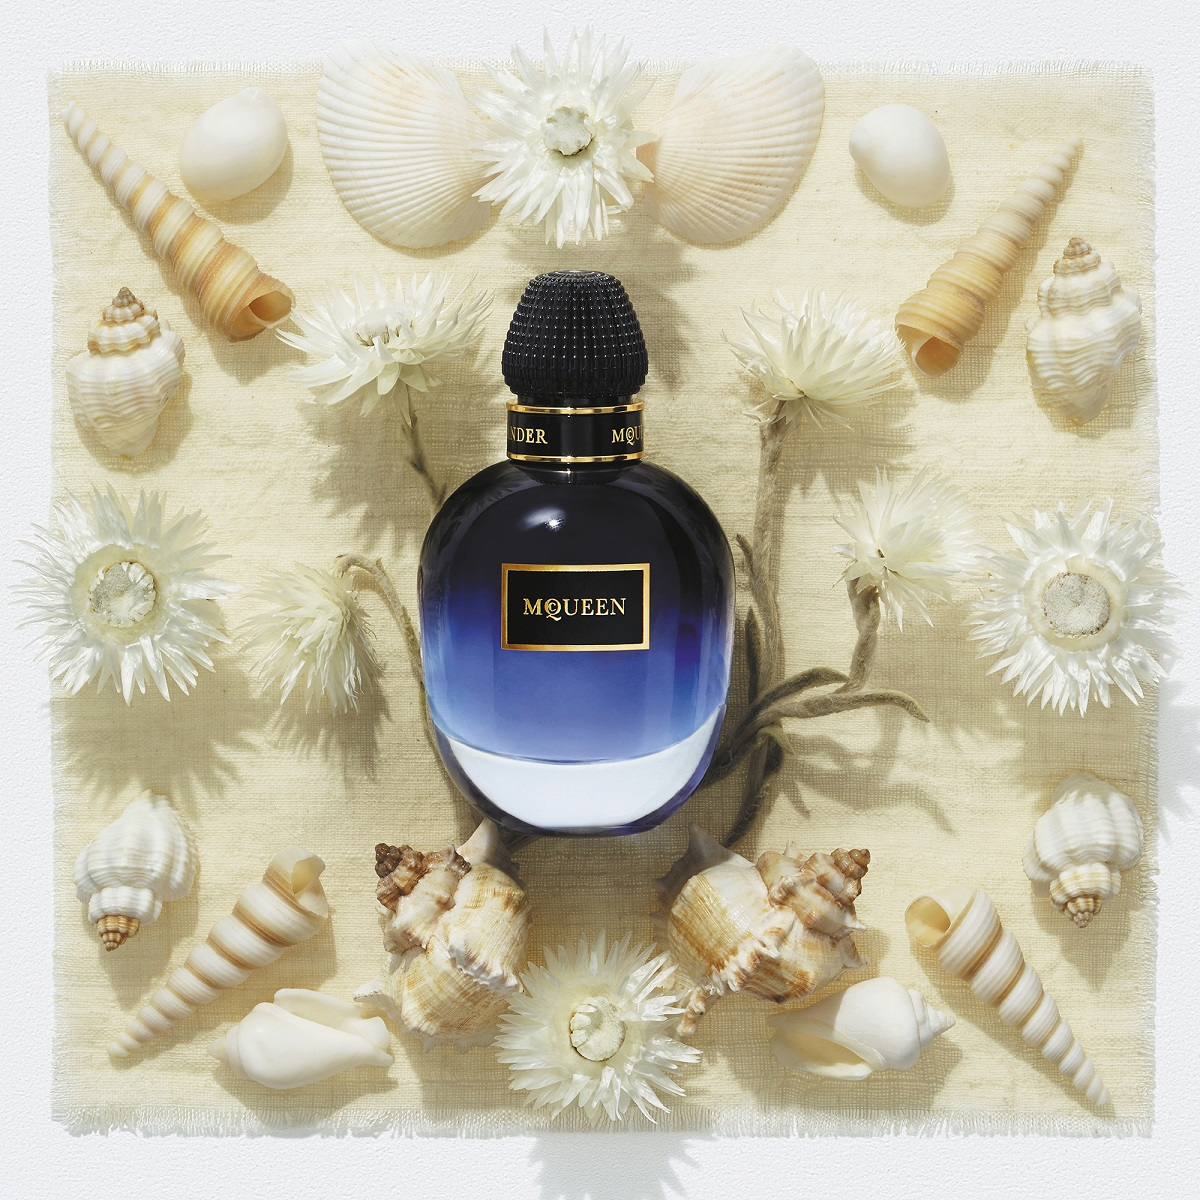 Discussion on this topic: Alexander McQueen Launches A Fragrance House, alexander-mcqueen-launches-a-fragrance-house/